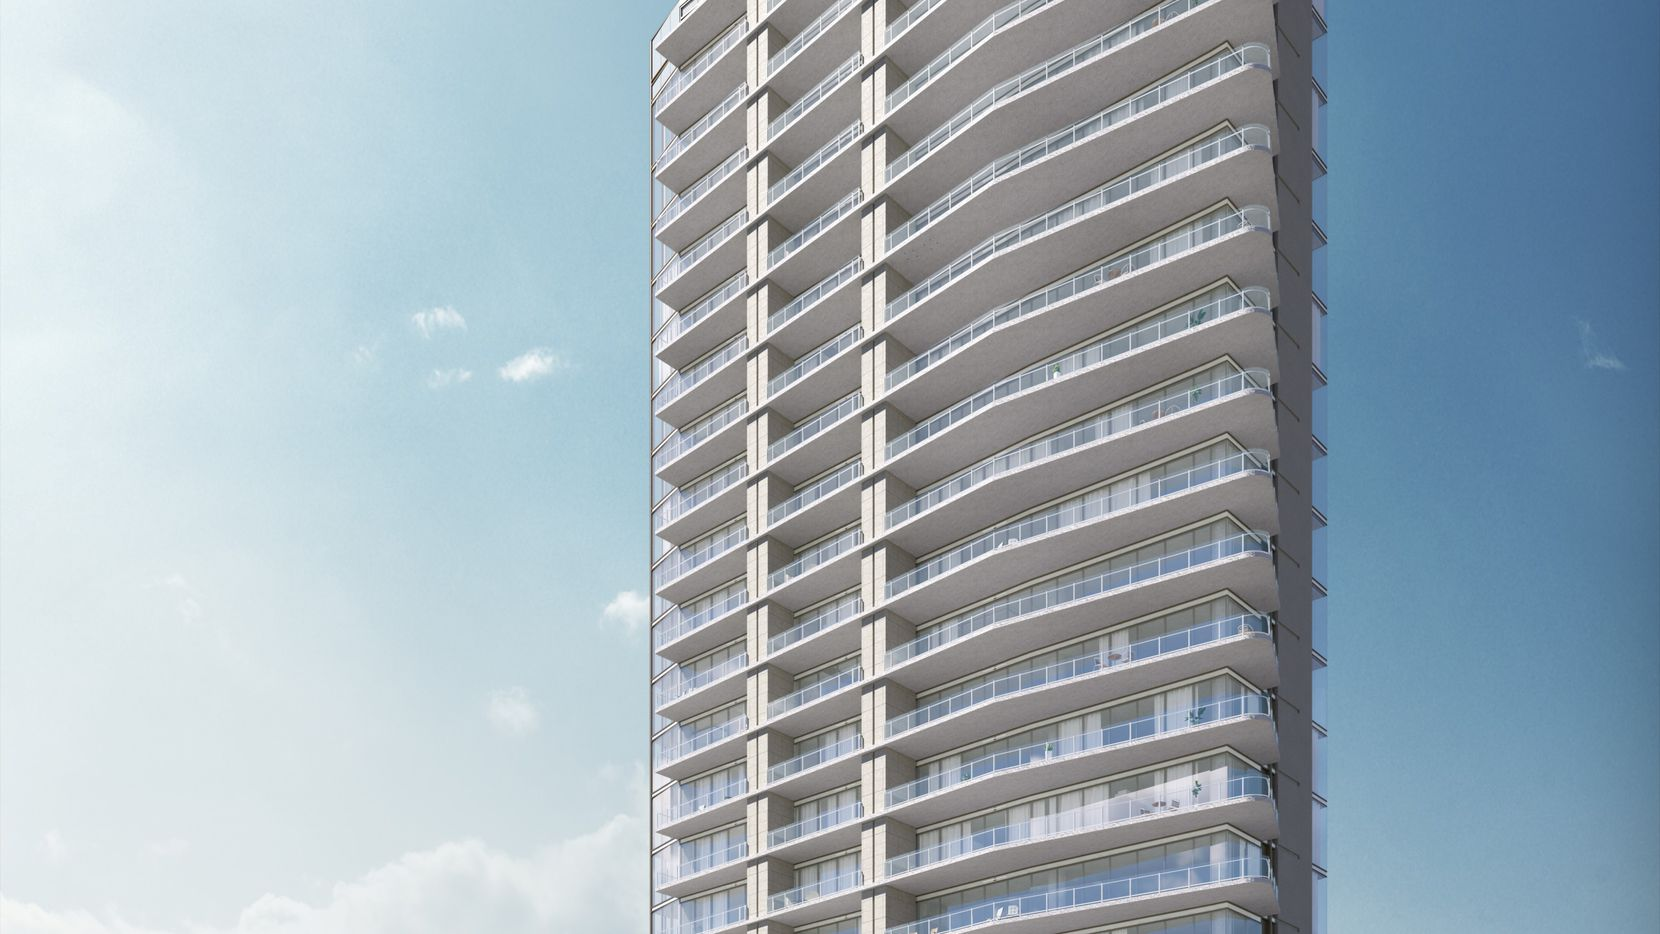 The Windrose Tower at Legacy West will have 27 floors of condominiums.